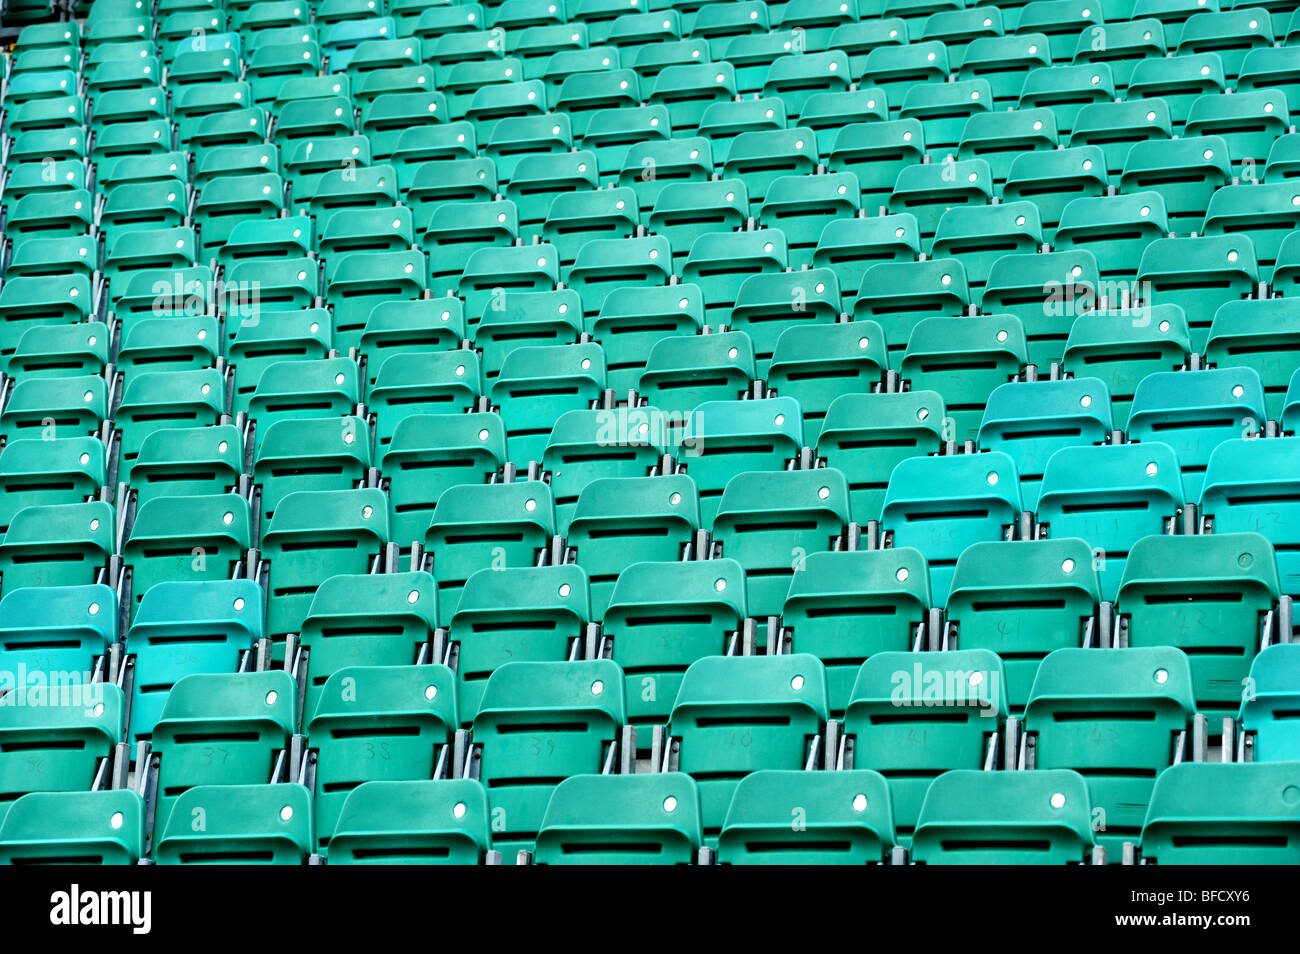 Rows of empty green seats inside a sports stadium - Stock Image